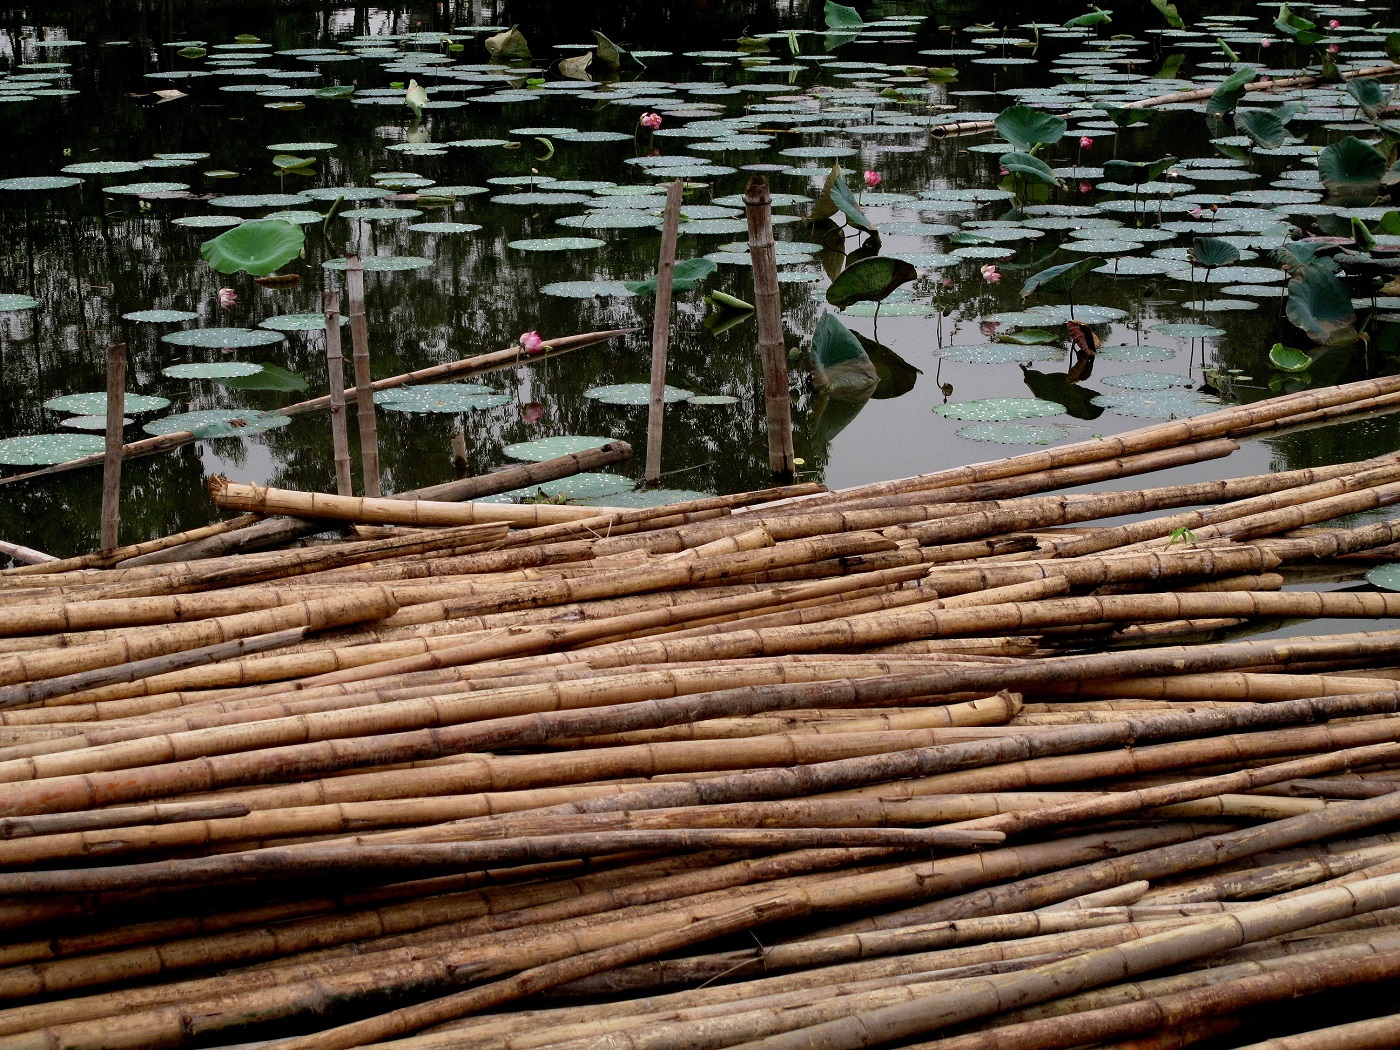 Bamboo floating in water. Photo from Sabine R via Unsplash.